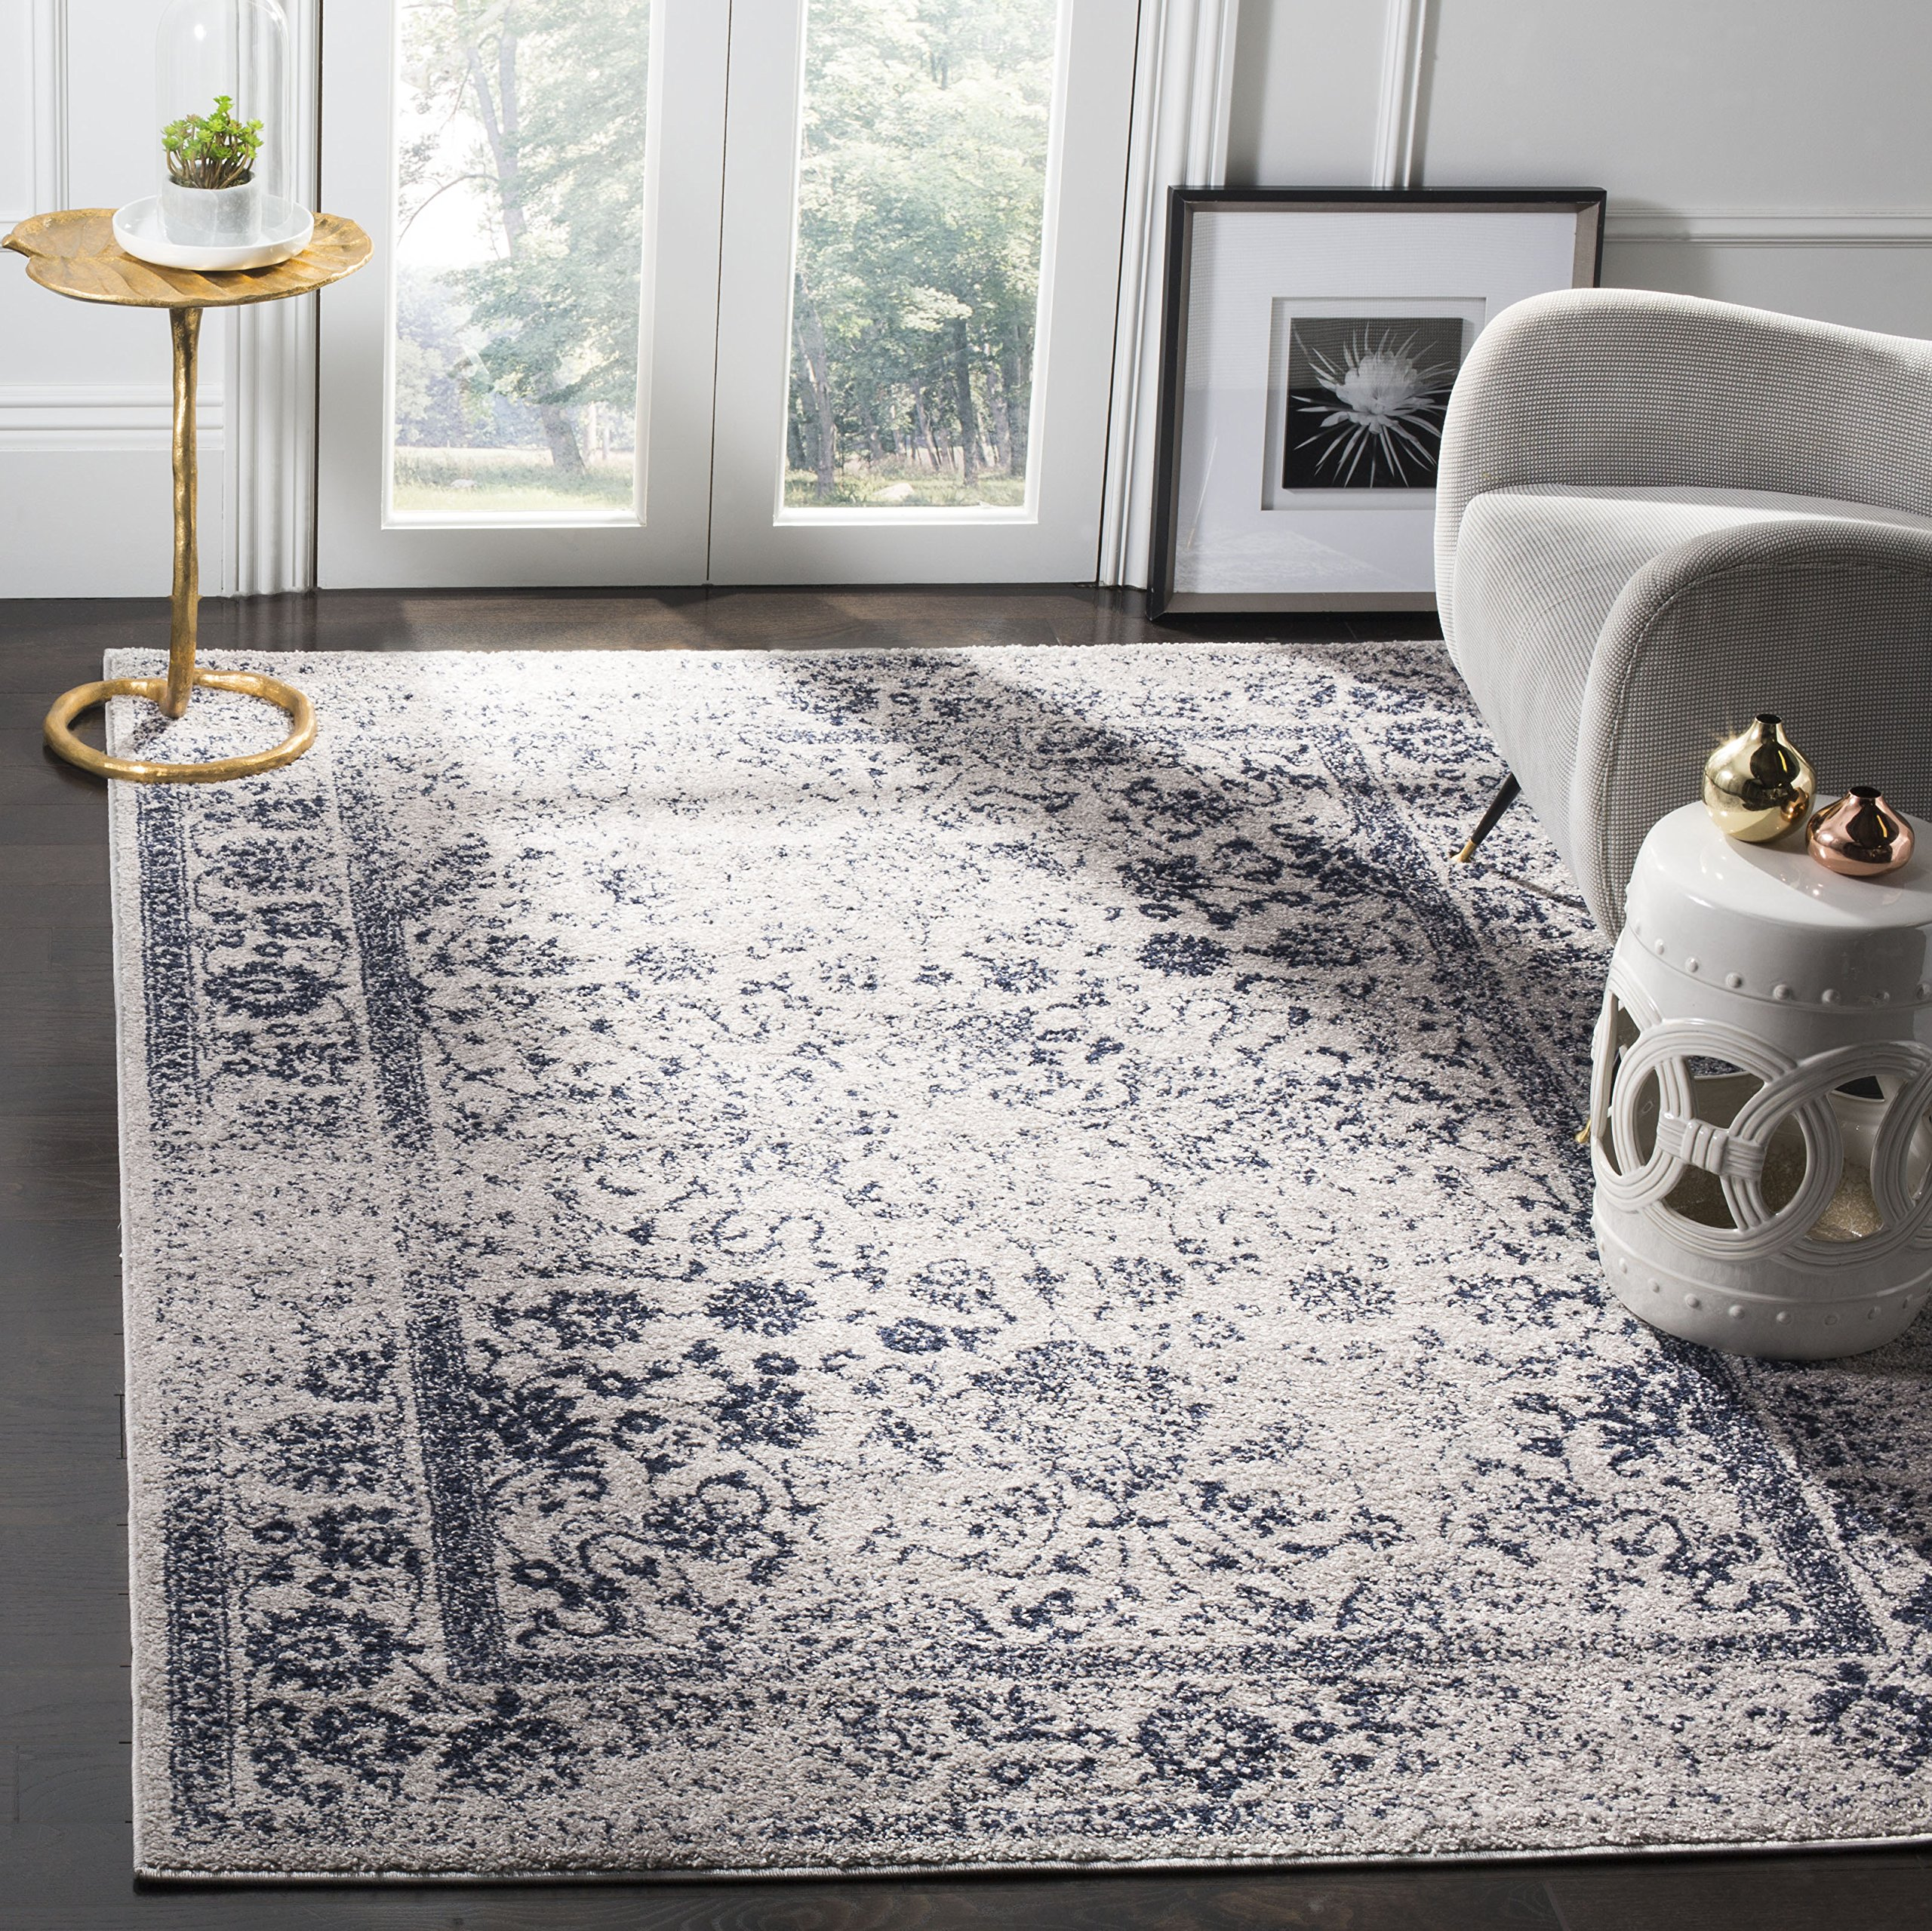 Safavieh Adirondack Collection ADR109P Grey and Navy Blue Oriental Vintage Distressed Area Rug (6' x 9)